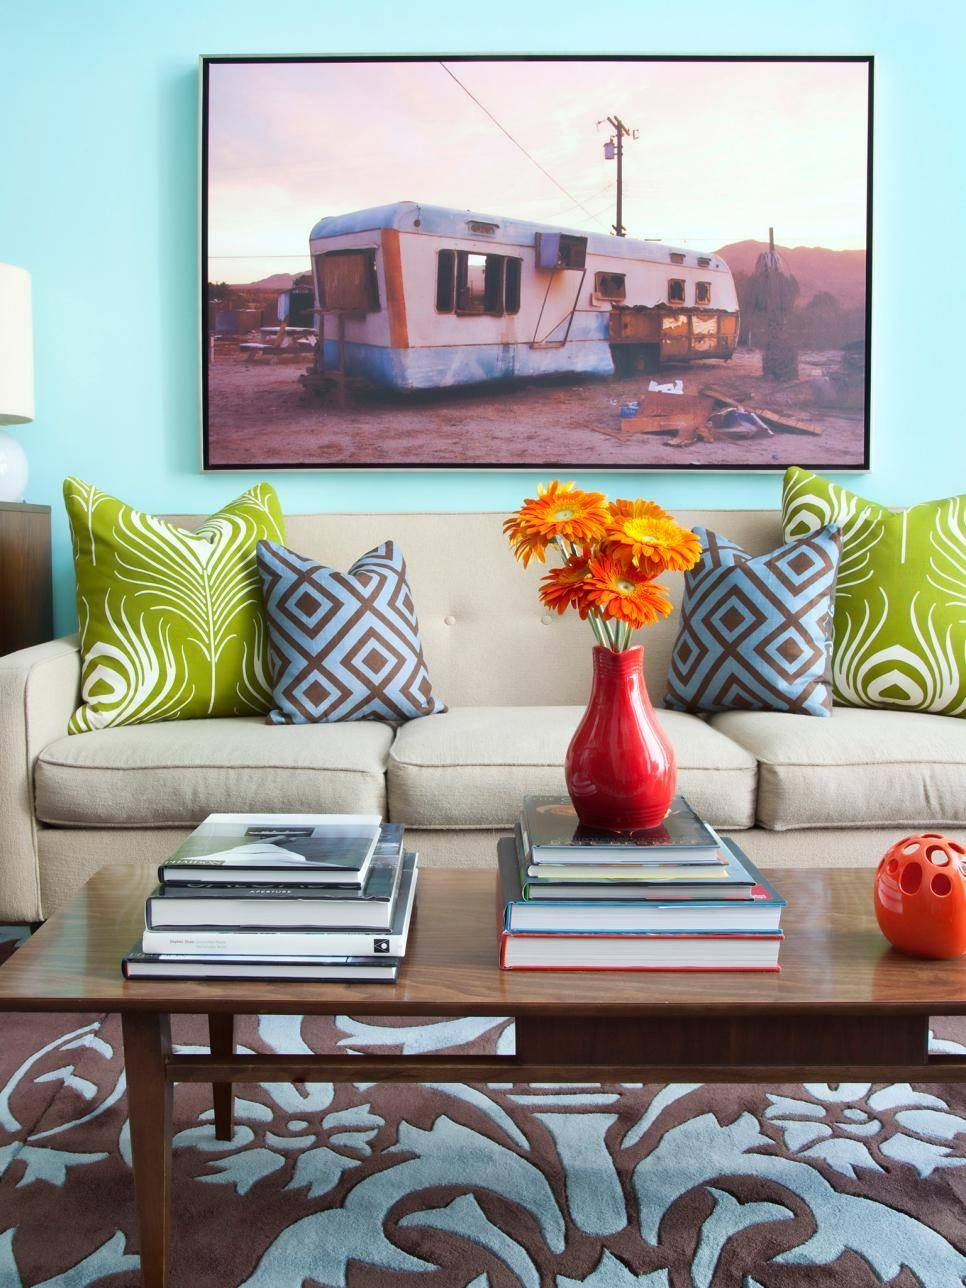 Design Behind The Living Room Sofa | Hgtv In Best And Newest Wall Pictures For Living Room (View 7 of 20)